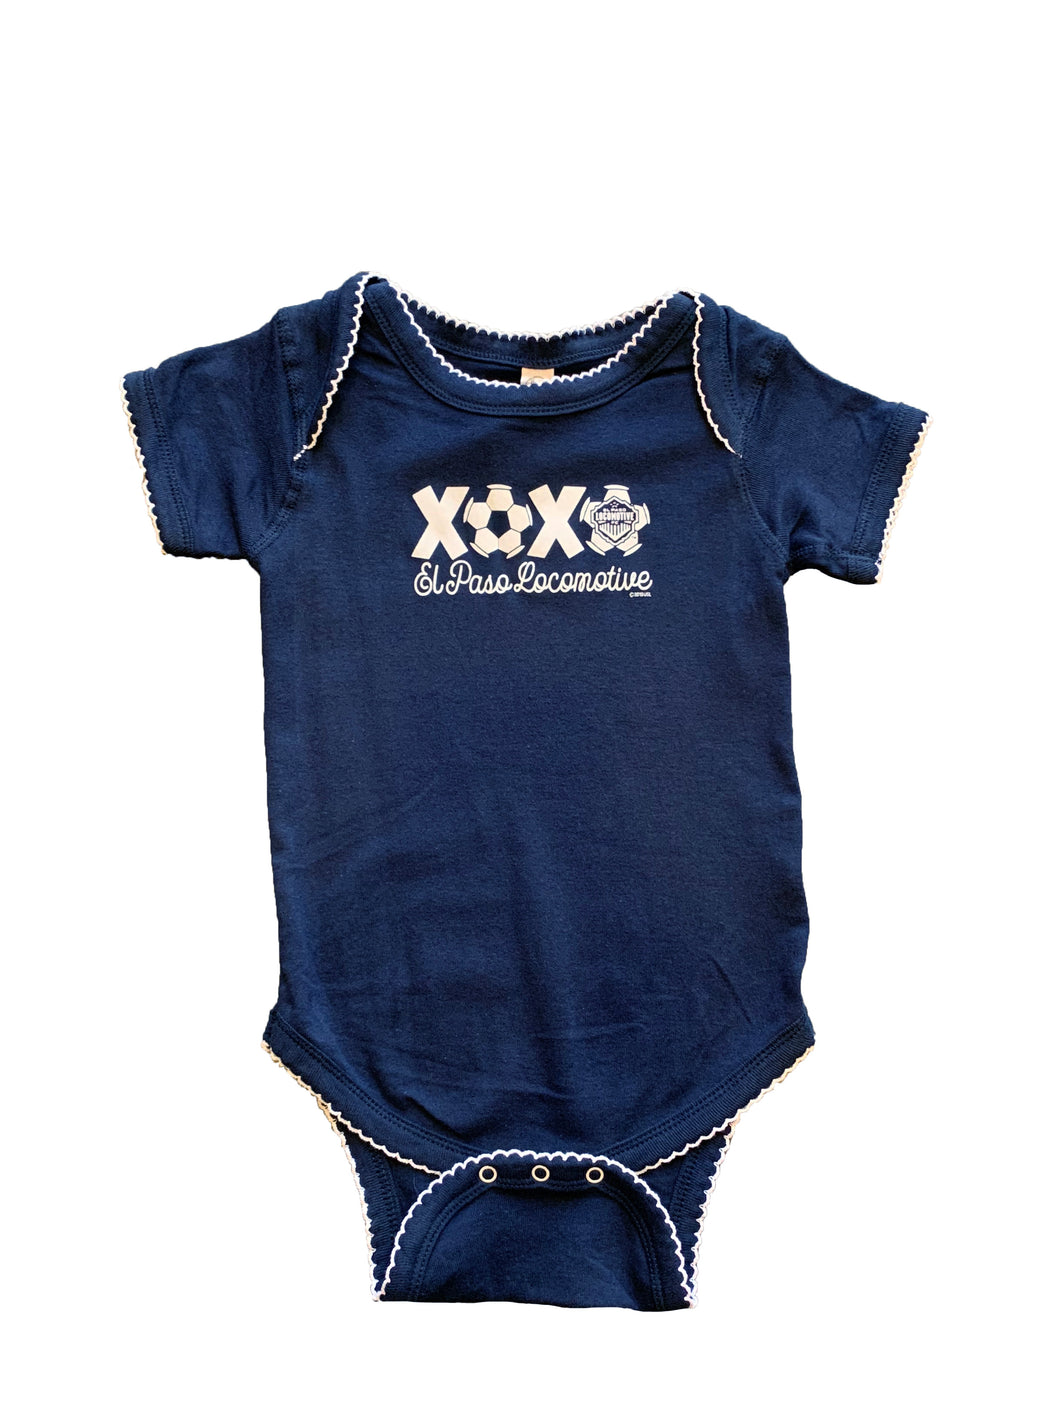 XOXO Onesie With Soccer Ball